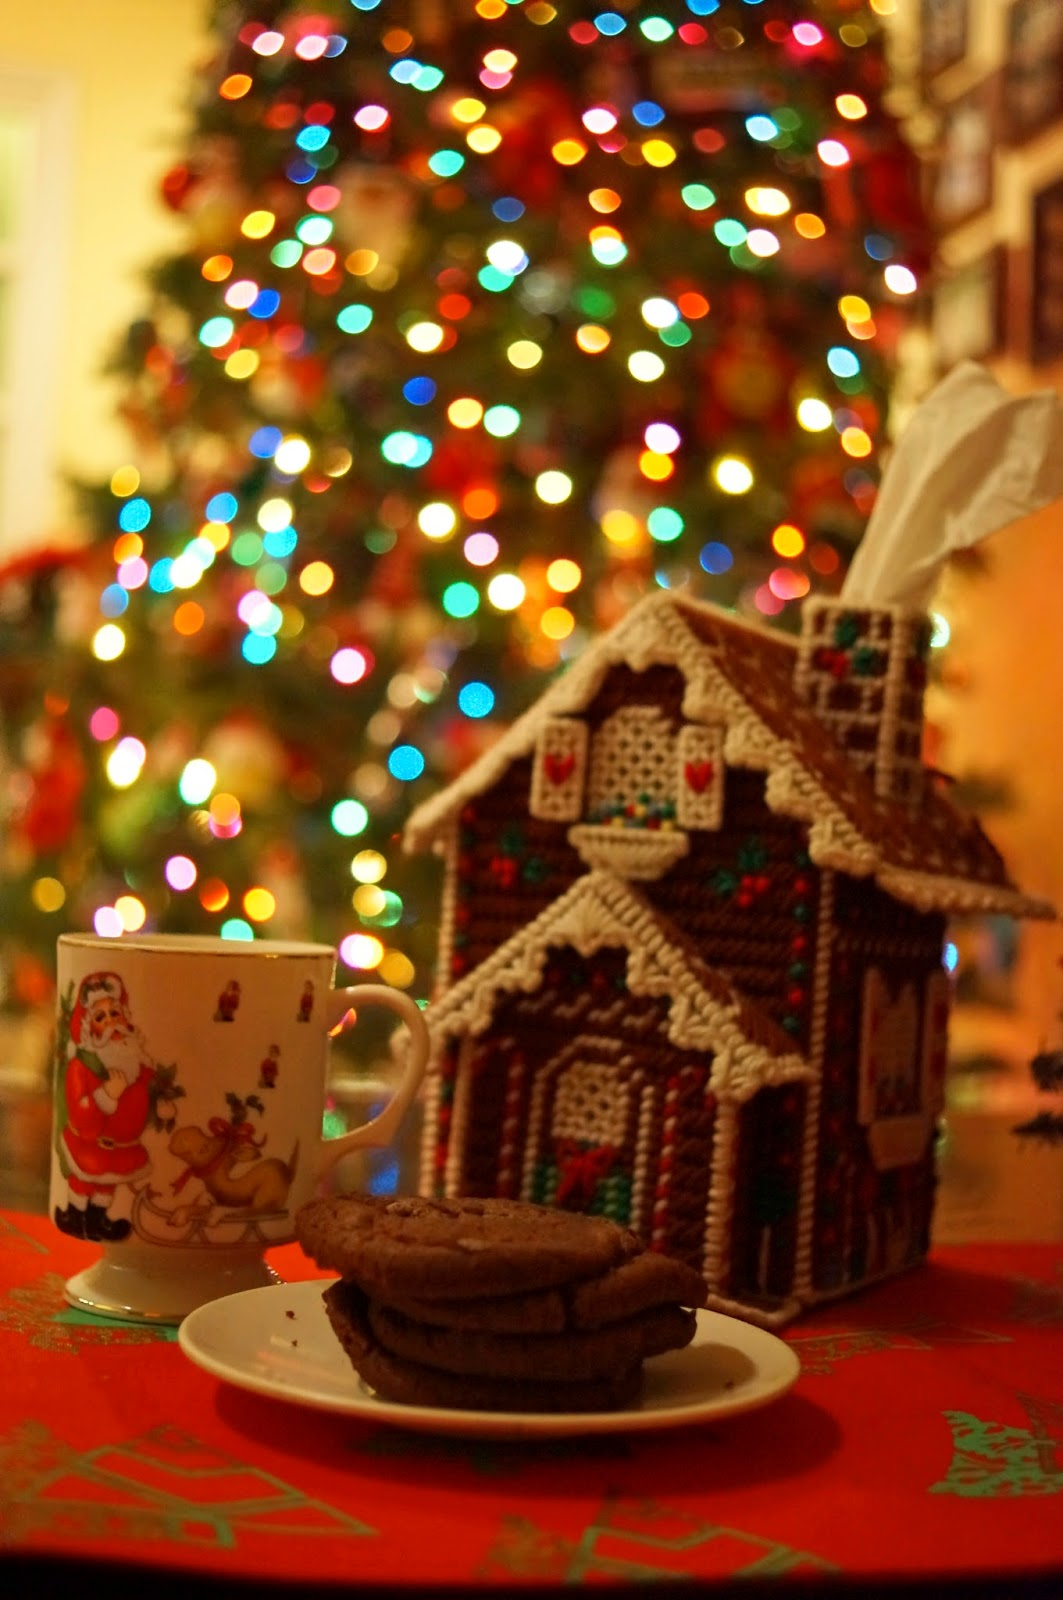 Cute Gingerbread House and Christmas Cookies